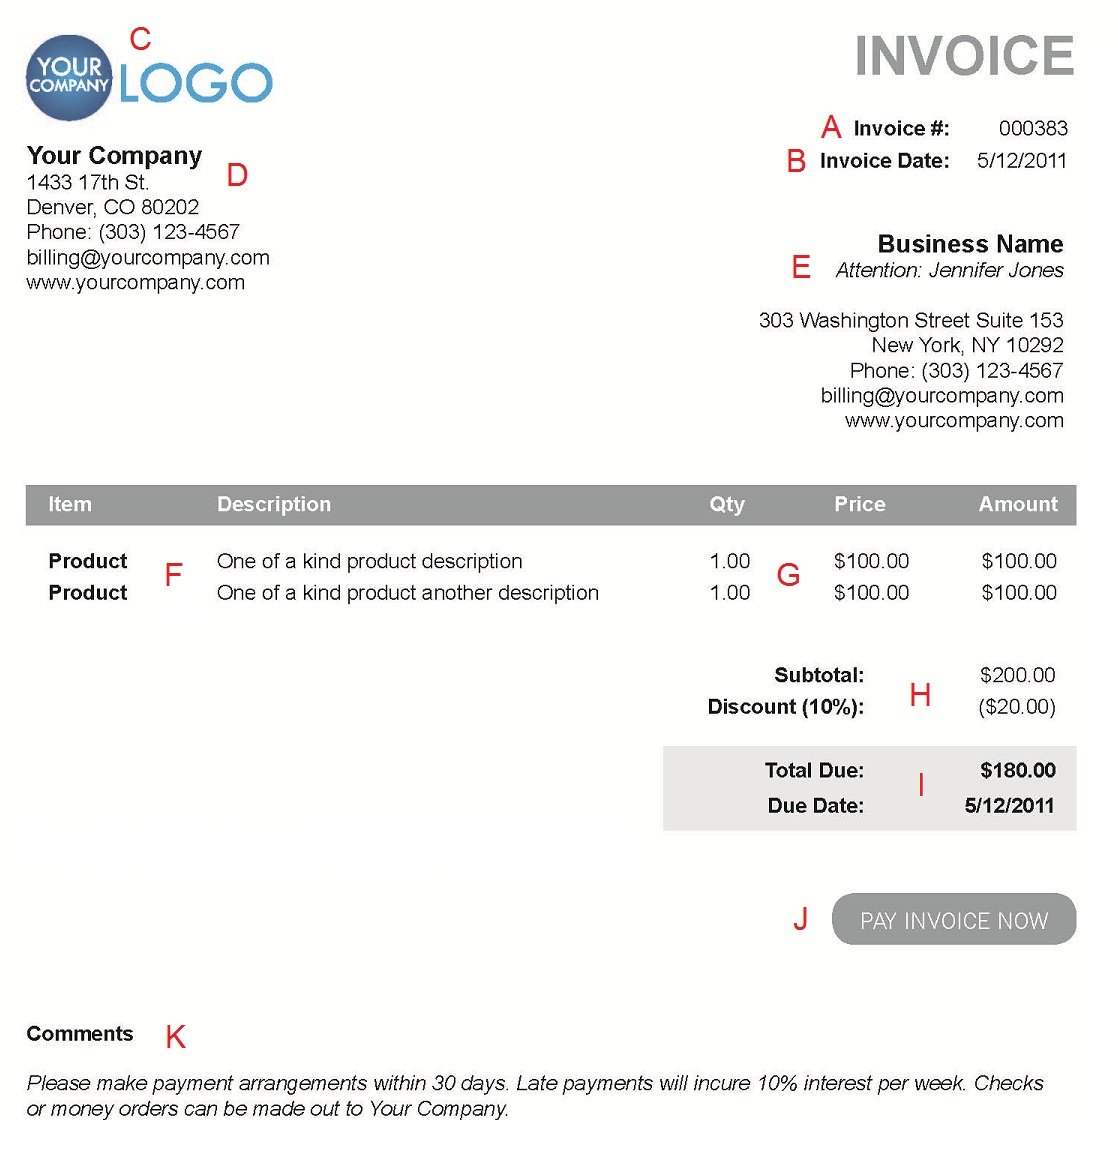 Conservativereviewus  Picturesque The  Different Sections Of An Electronic Payment Invoice With Engaging A  With Beautiful Free Software Invoice Also Automatic Invoicing Software In Addition Invoice Proforma Sample And Template Invoice For Services As Well As Nz Invoice Template Additionally Excel  Invoice Template Free Download From Paysimplecom With Conservativereviewus  Engaging The  Different Sections Of An Electronic Payment Invoice With Beautiful A  And Picturesque Free Software Invoice Also Automatic Invoicing Software In Addition Invoice Proforma Sample From Paysimplecom